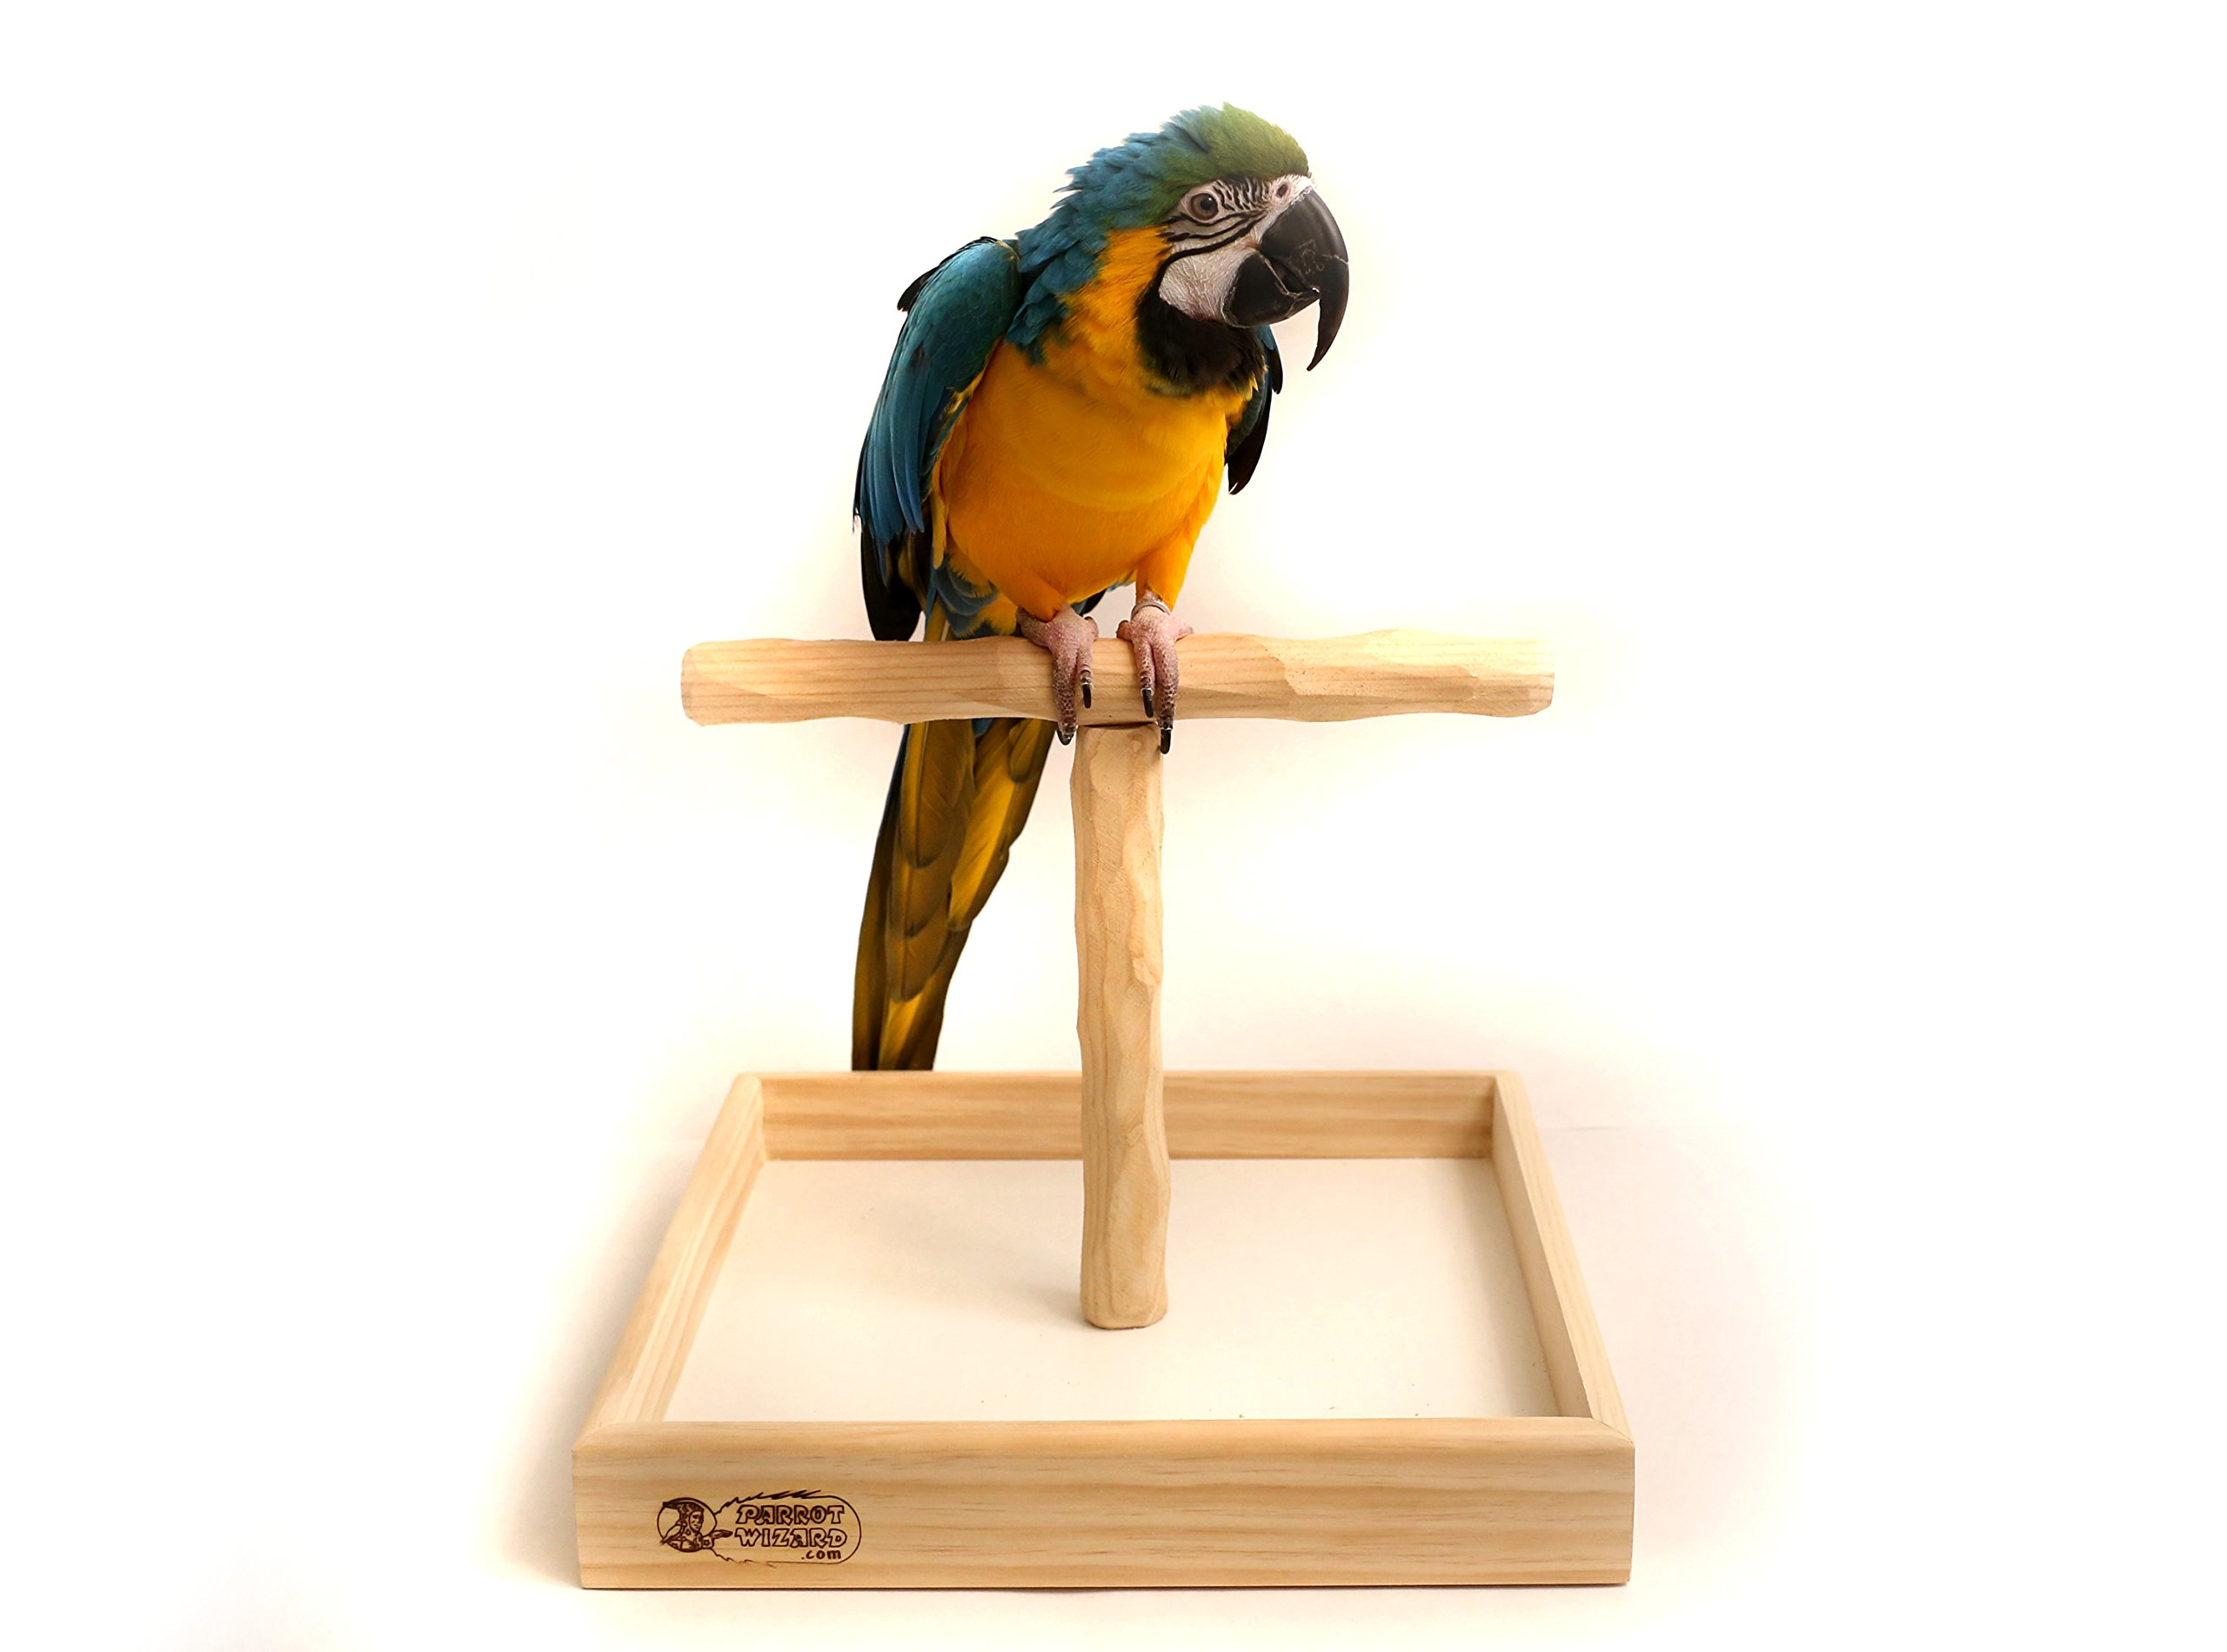 Deluxe Large Tabletop NU Perch - Parrot T Perch Stand Lg by Parrot Wizard